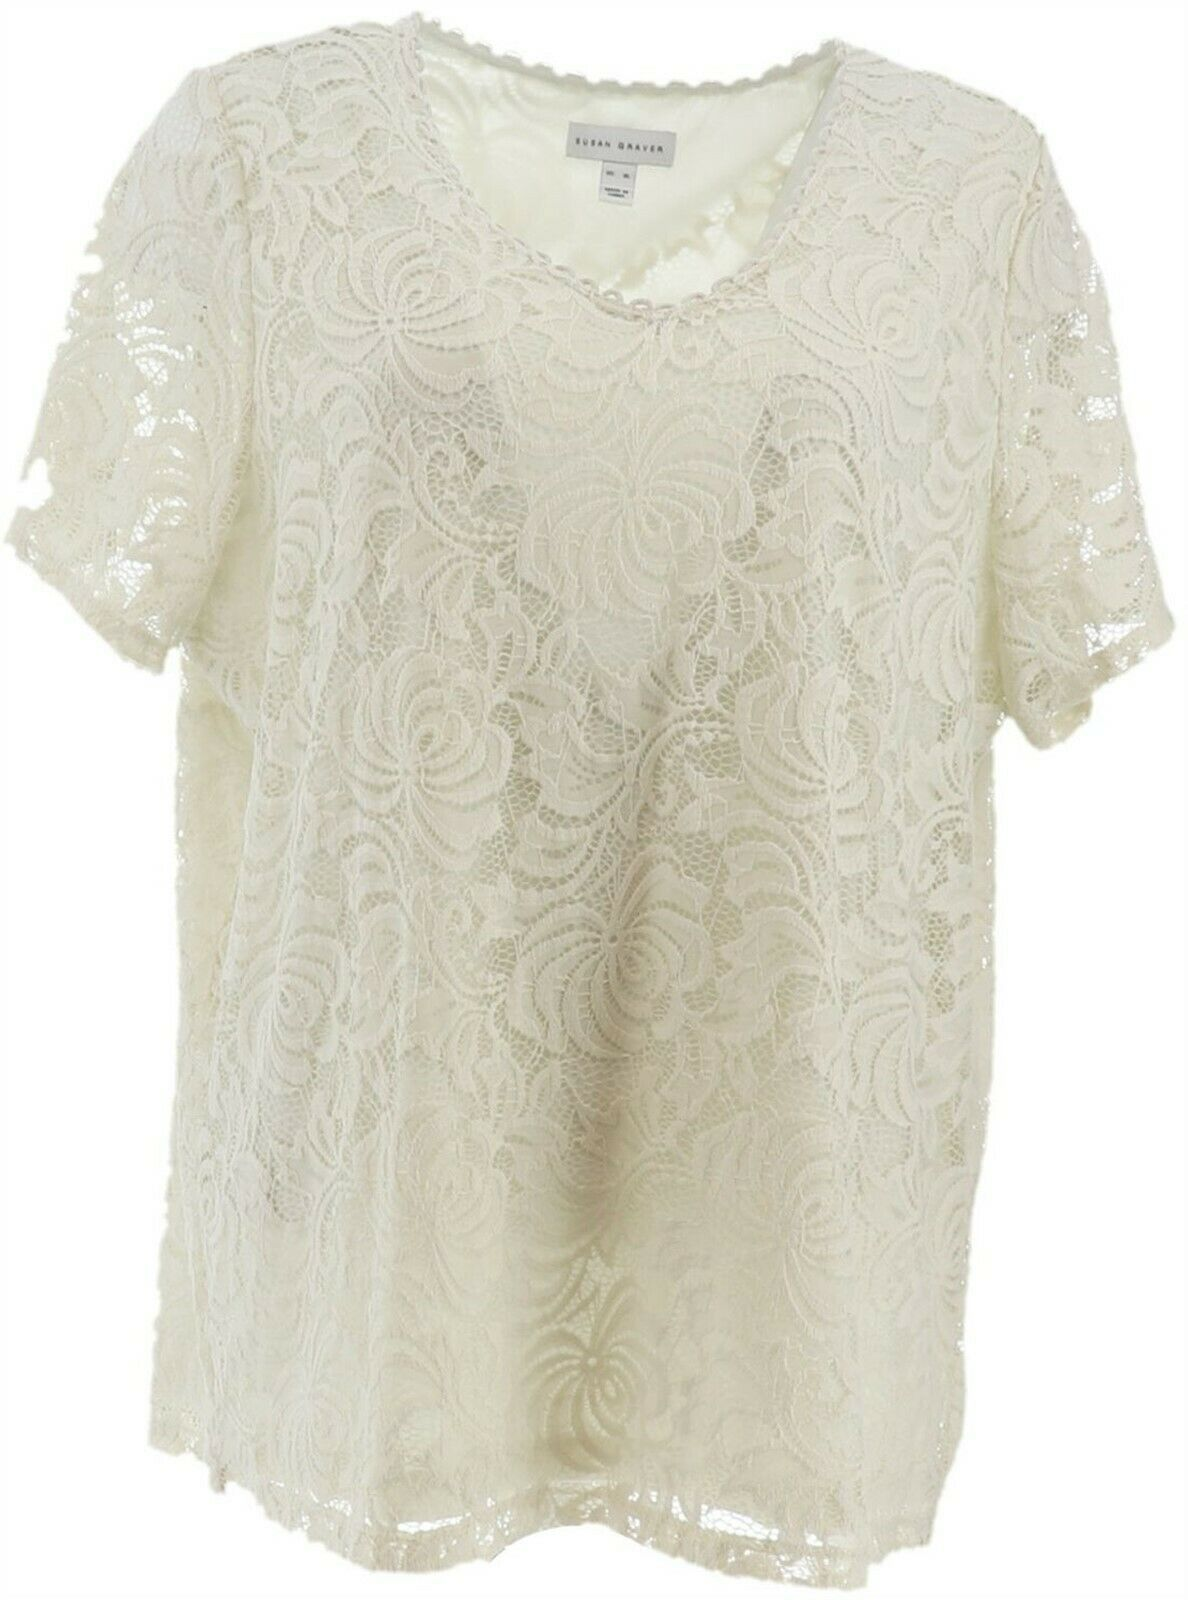 Primary image for Susan Graver Stretch Lace Short-Sleeve V-Neck Top Off-White L NEW A350189